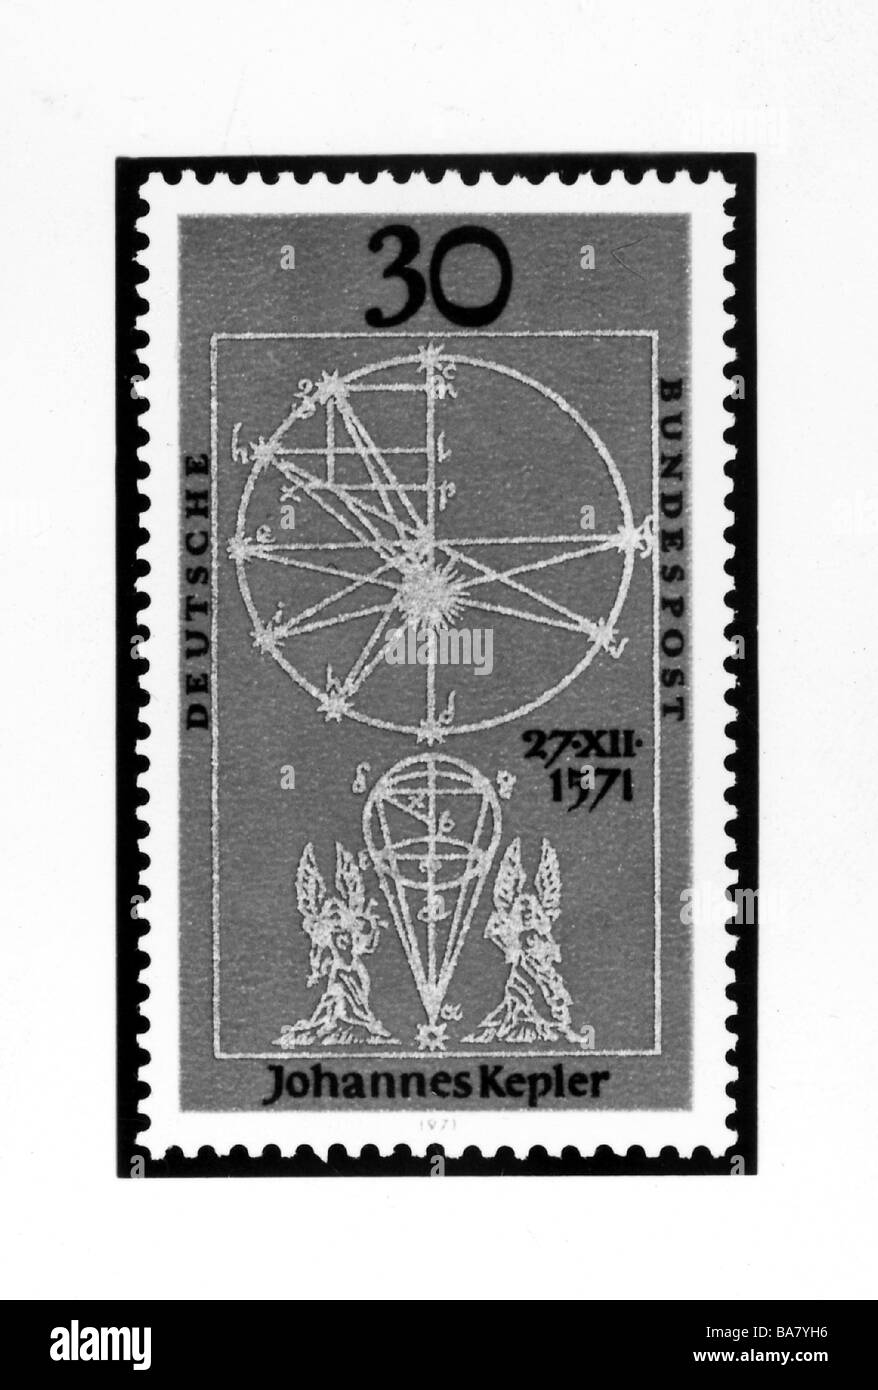 Kepler, Johannes, 27.12.1571 - 15.11.1630, German astronomer, 30 pfennig stamp with illustrations from his work - Stock Image